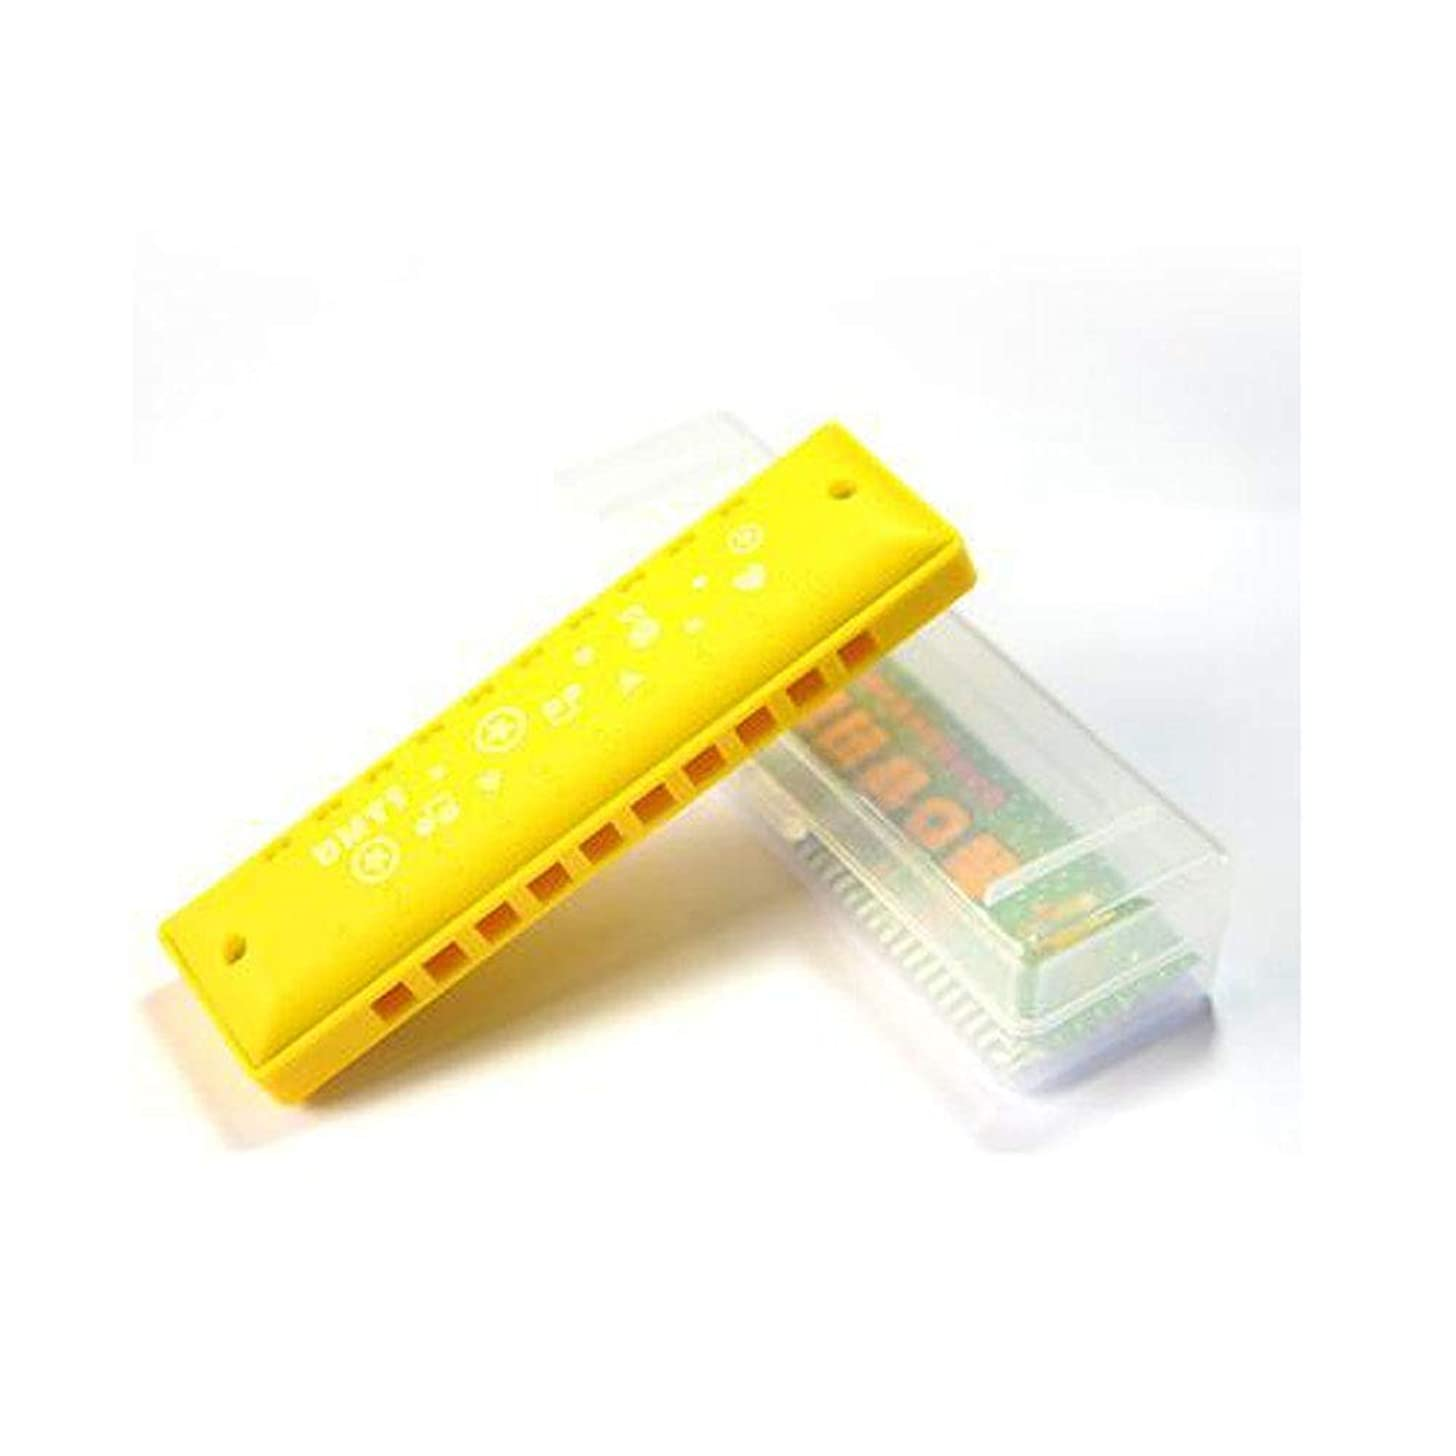 Xiaoningmeng Harmonica, 10-hole harmonica beginners tone piano kindergarten children's toys, girls birthday gifts, age: 1 year old - 3 years old Folk music instrument (Color : Yellow)